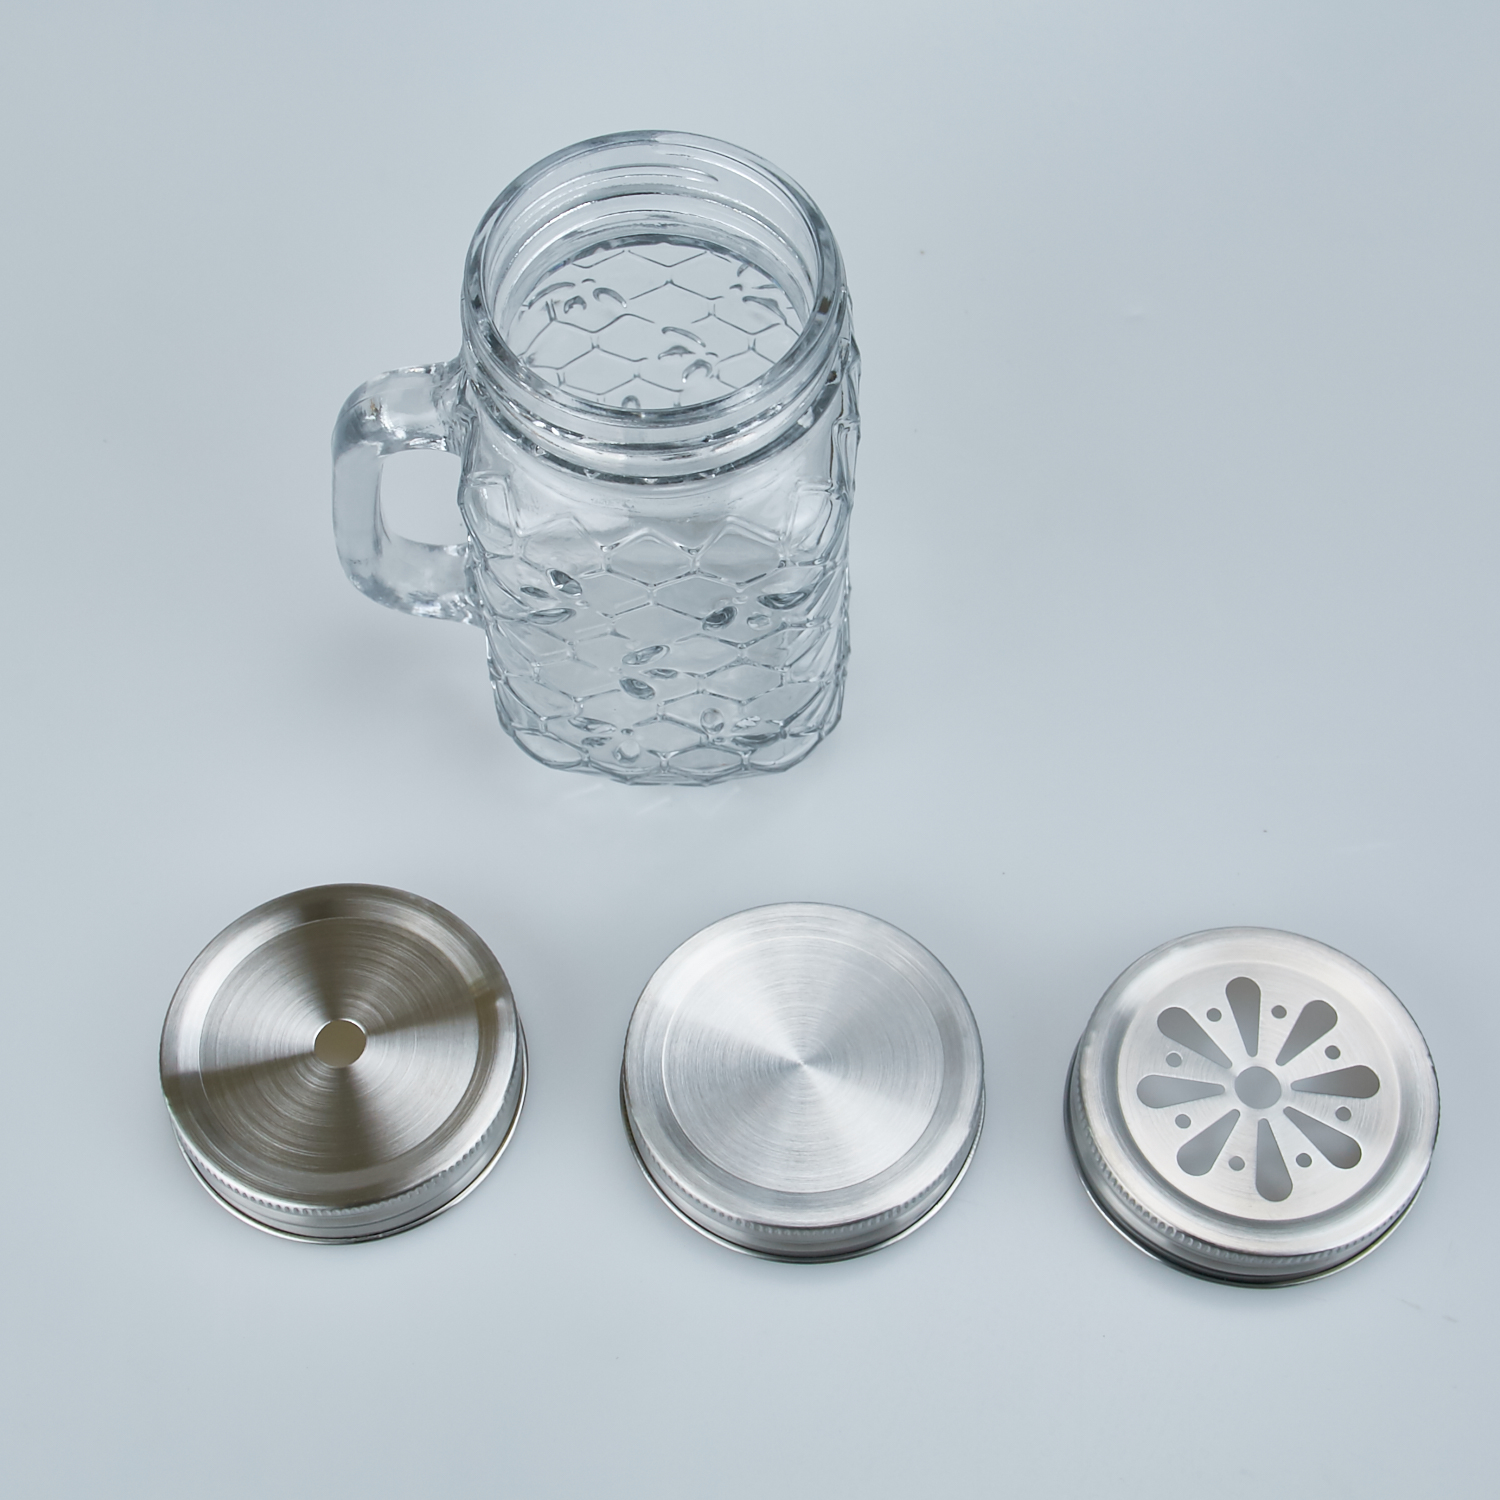 Glass Mason Jar with Stainless steel lid/cap and glass straw